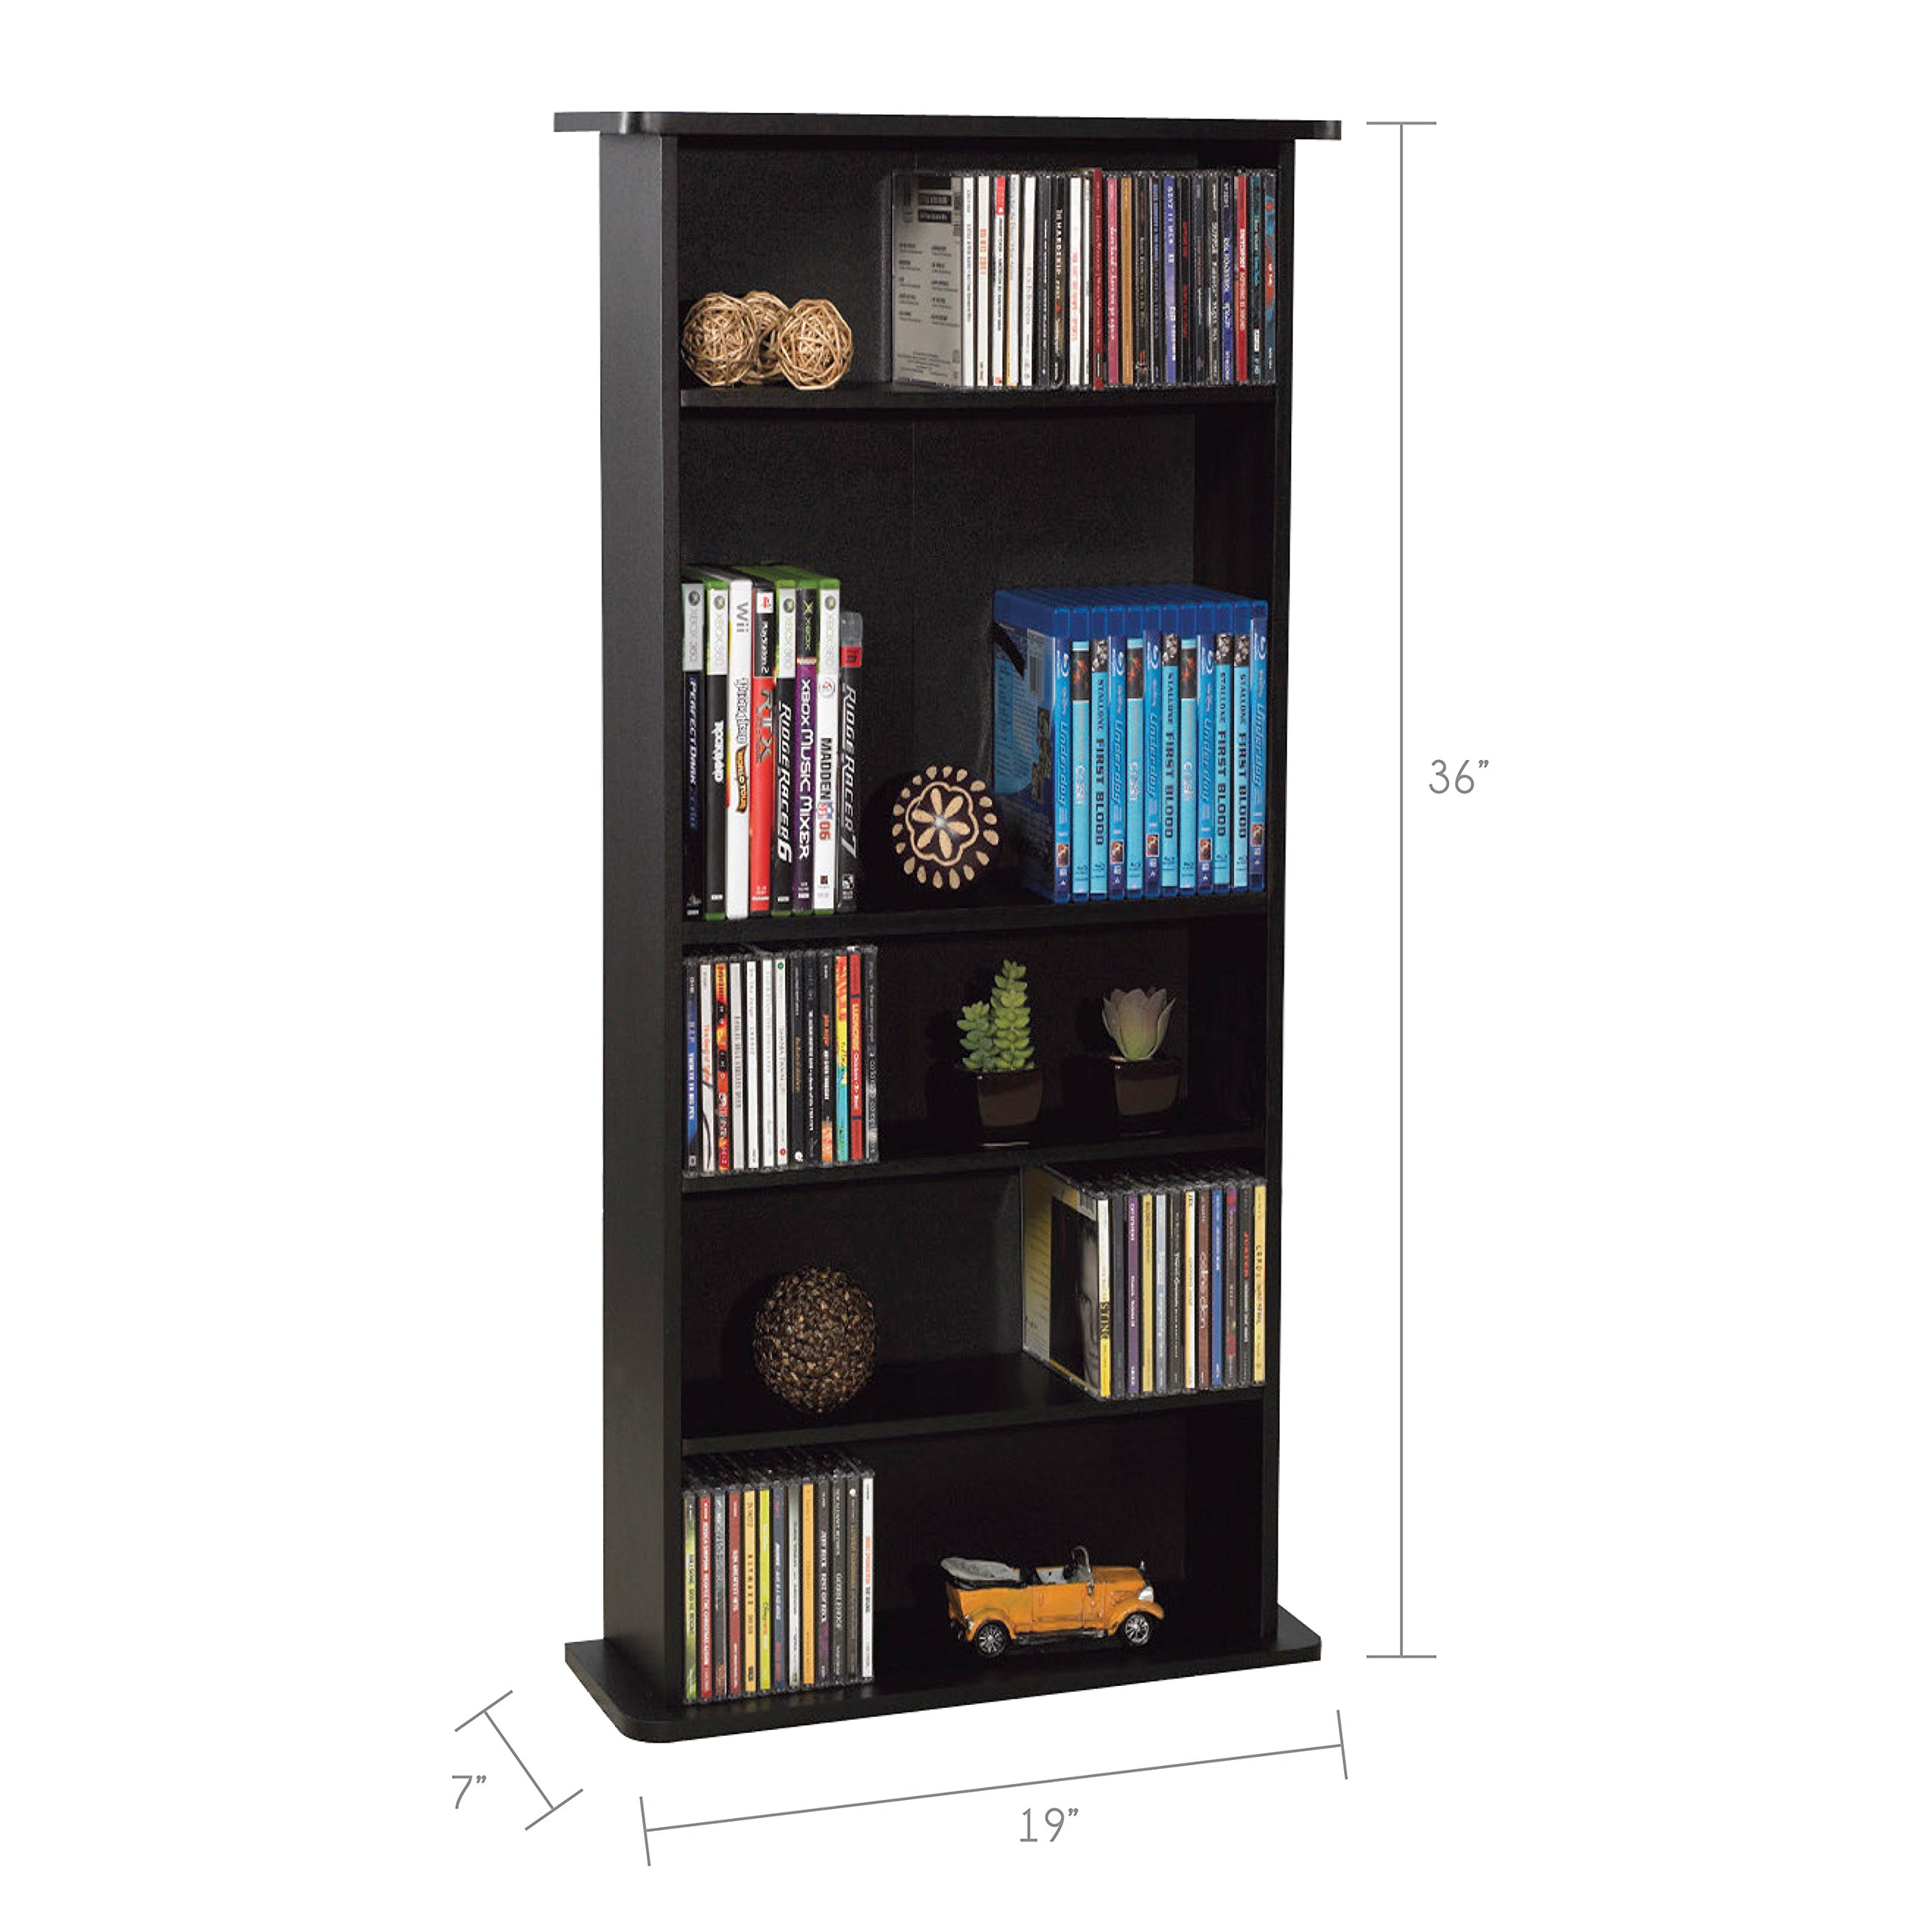 Atlantic Drawbridge Media Storage Cabinet - Store & Organize A Mix of Media 240Cds, 108DVDs Or 132 Blue-Ray/Video Games, Adjustable Shelves, PN37935726 in Black by Atlantic